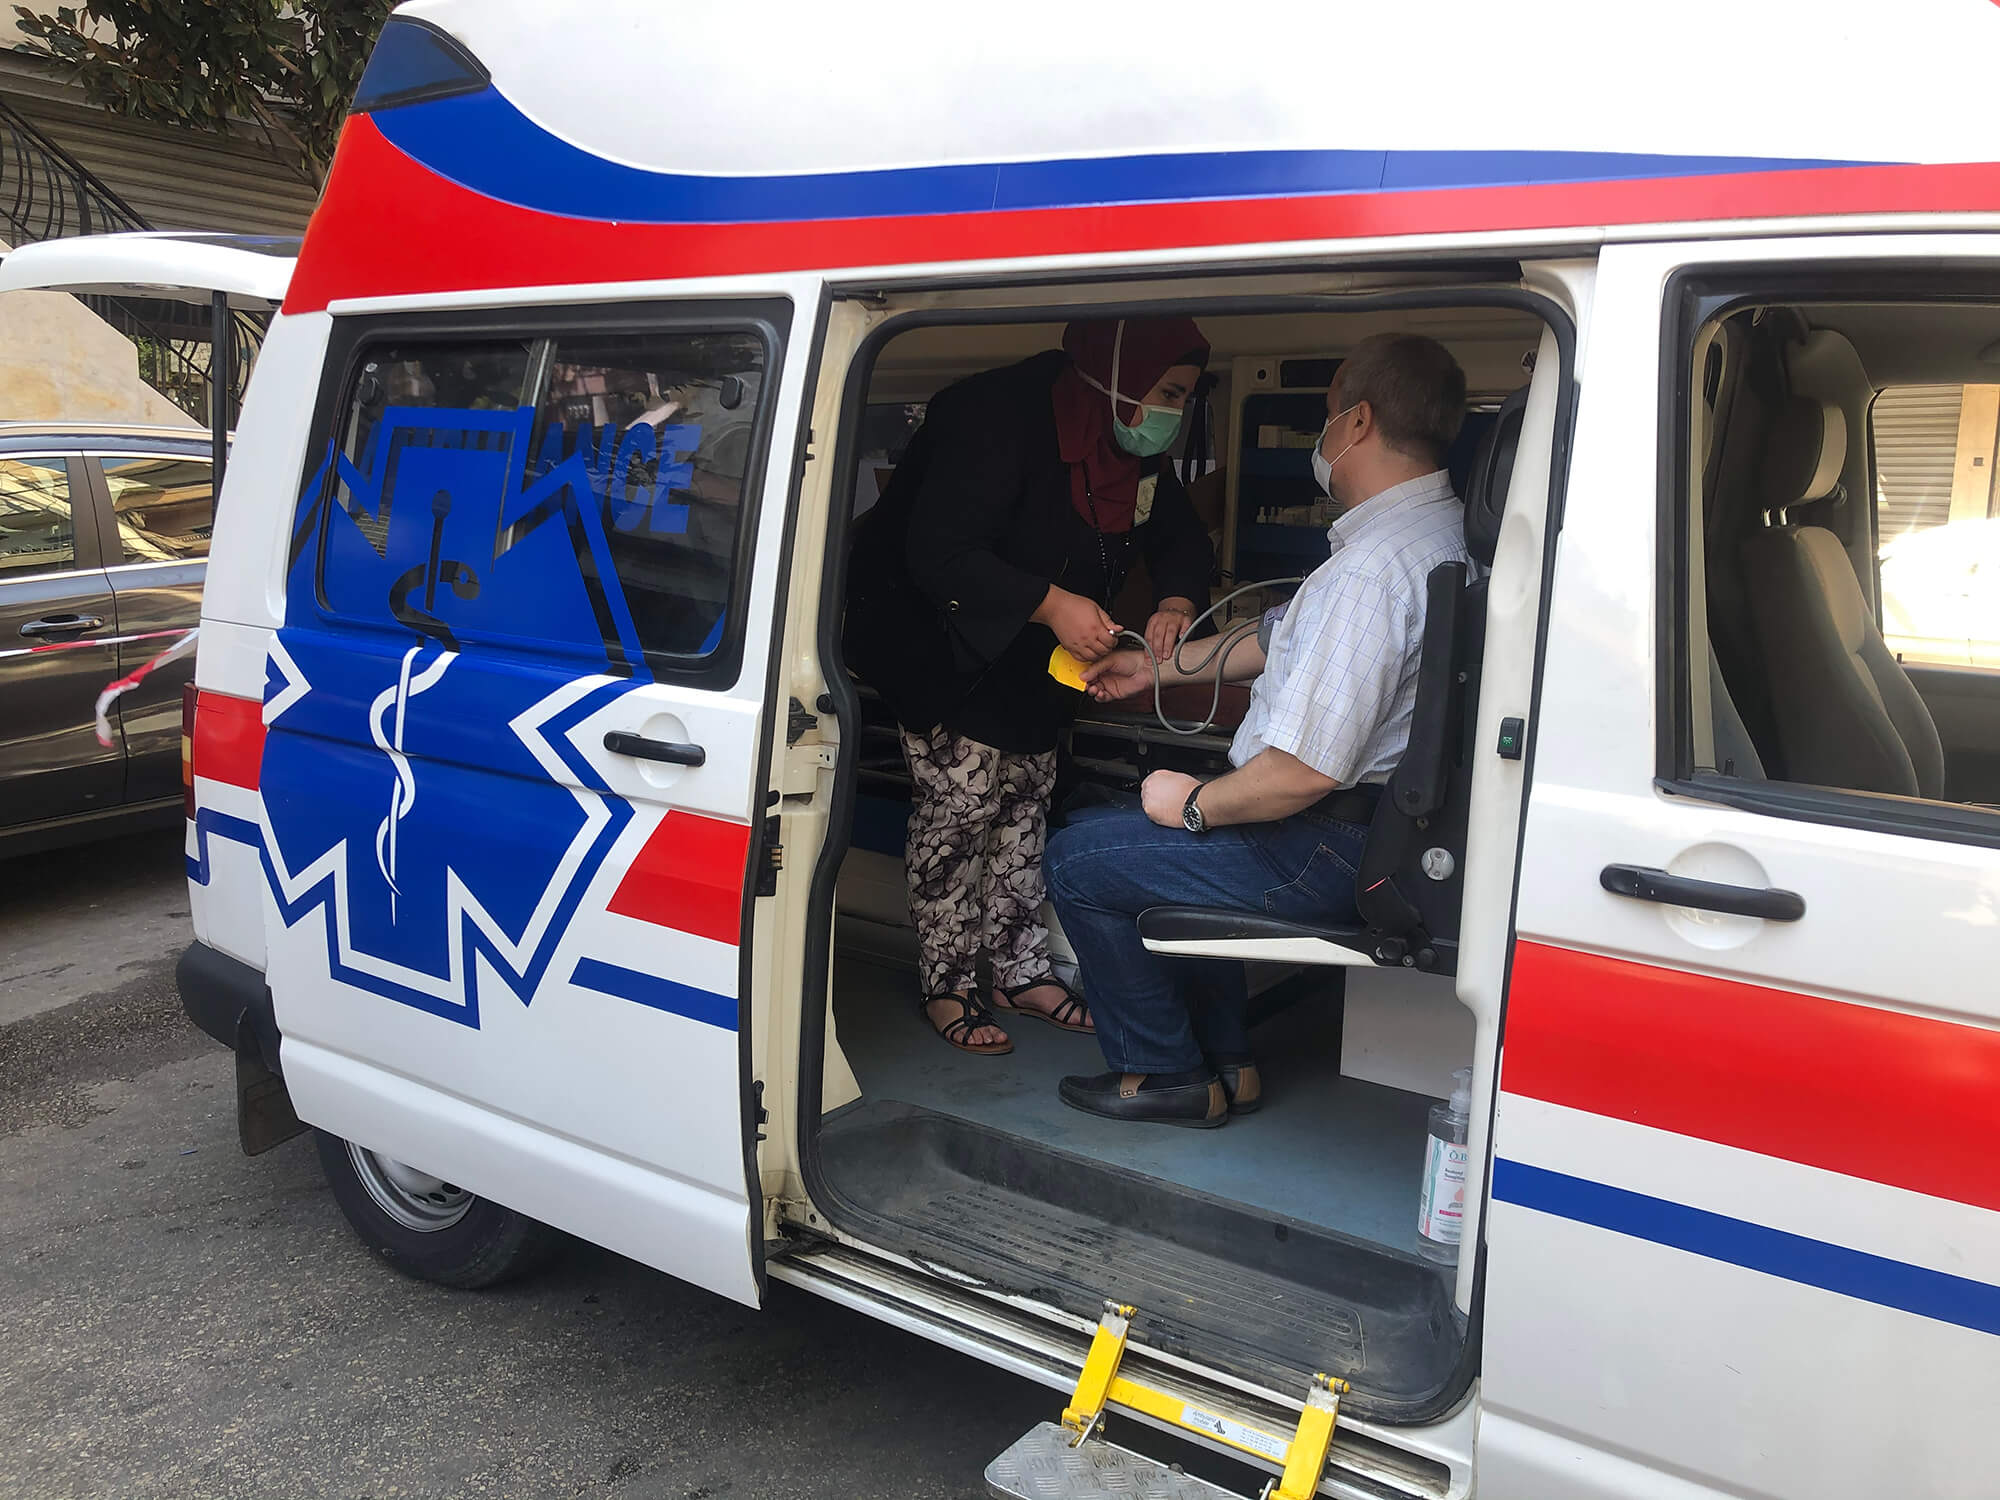 A patient receives services in a mobile medical unit in Borj Hammoud.